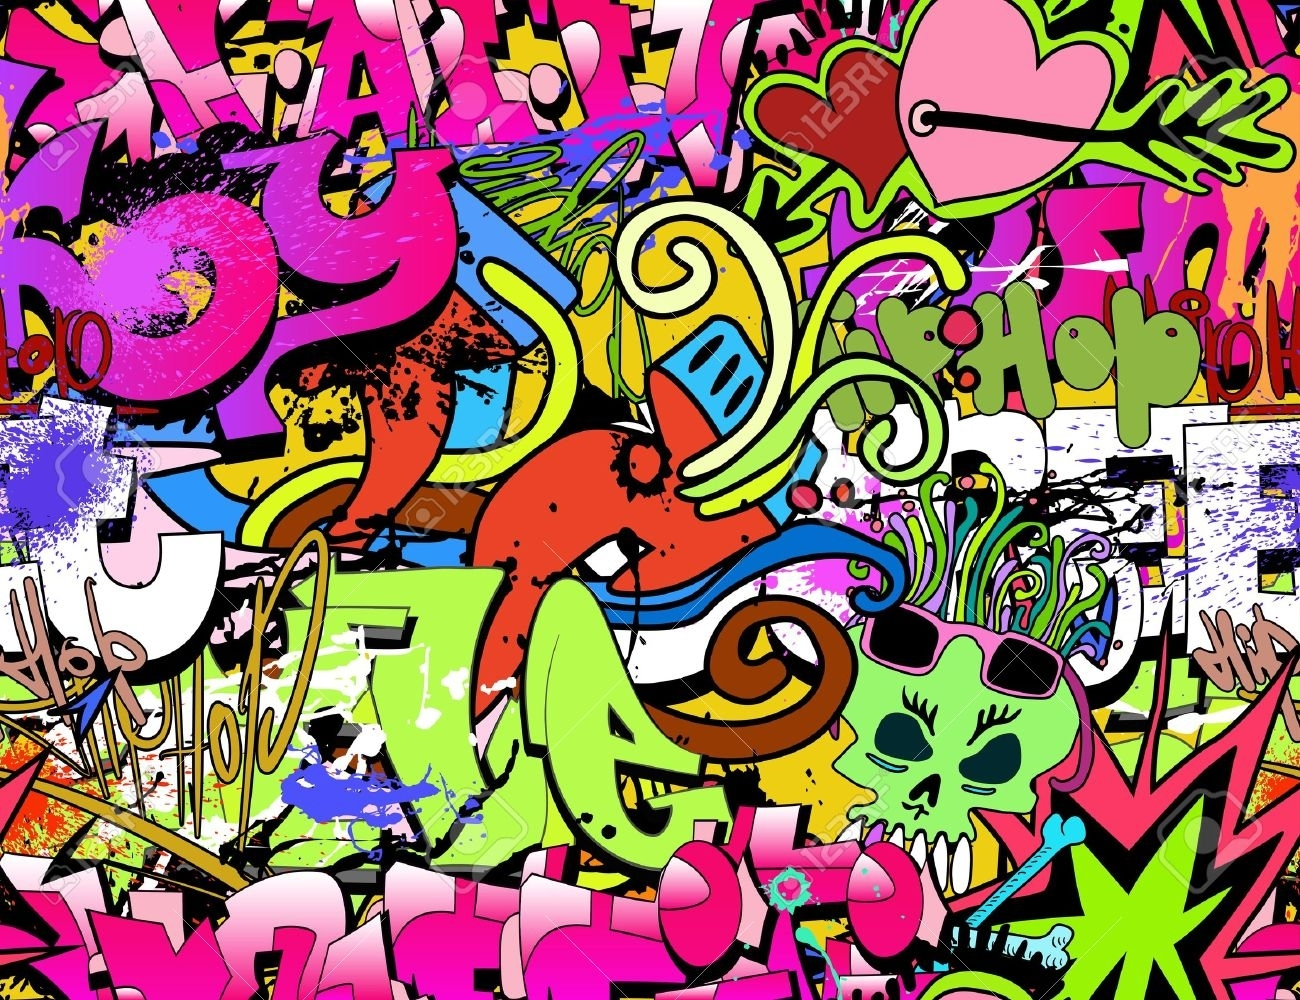 Graffiti Wall Art Background Hip Hop Style Seamless Texture Regarding Most Up To Date Hip Hop Wall Art (Gallery 4 of 15)